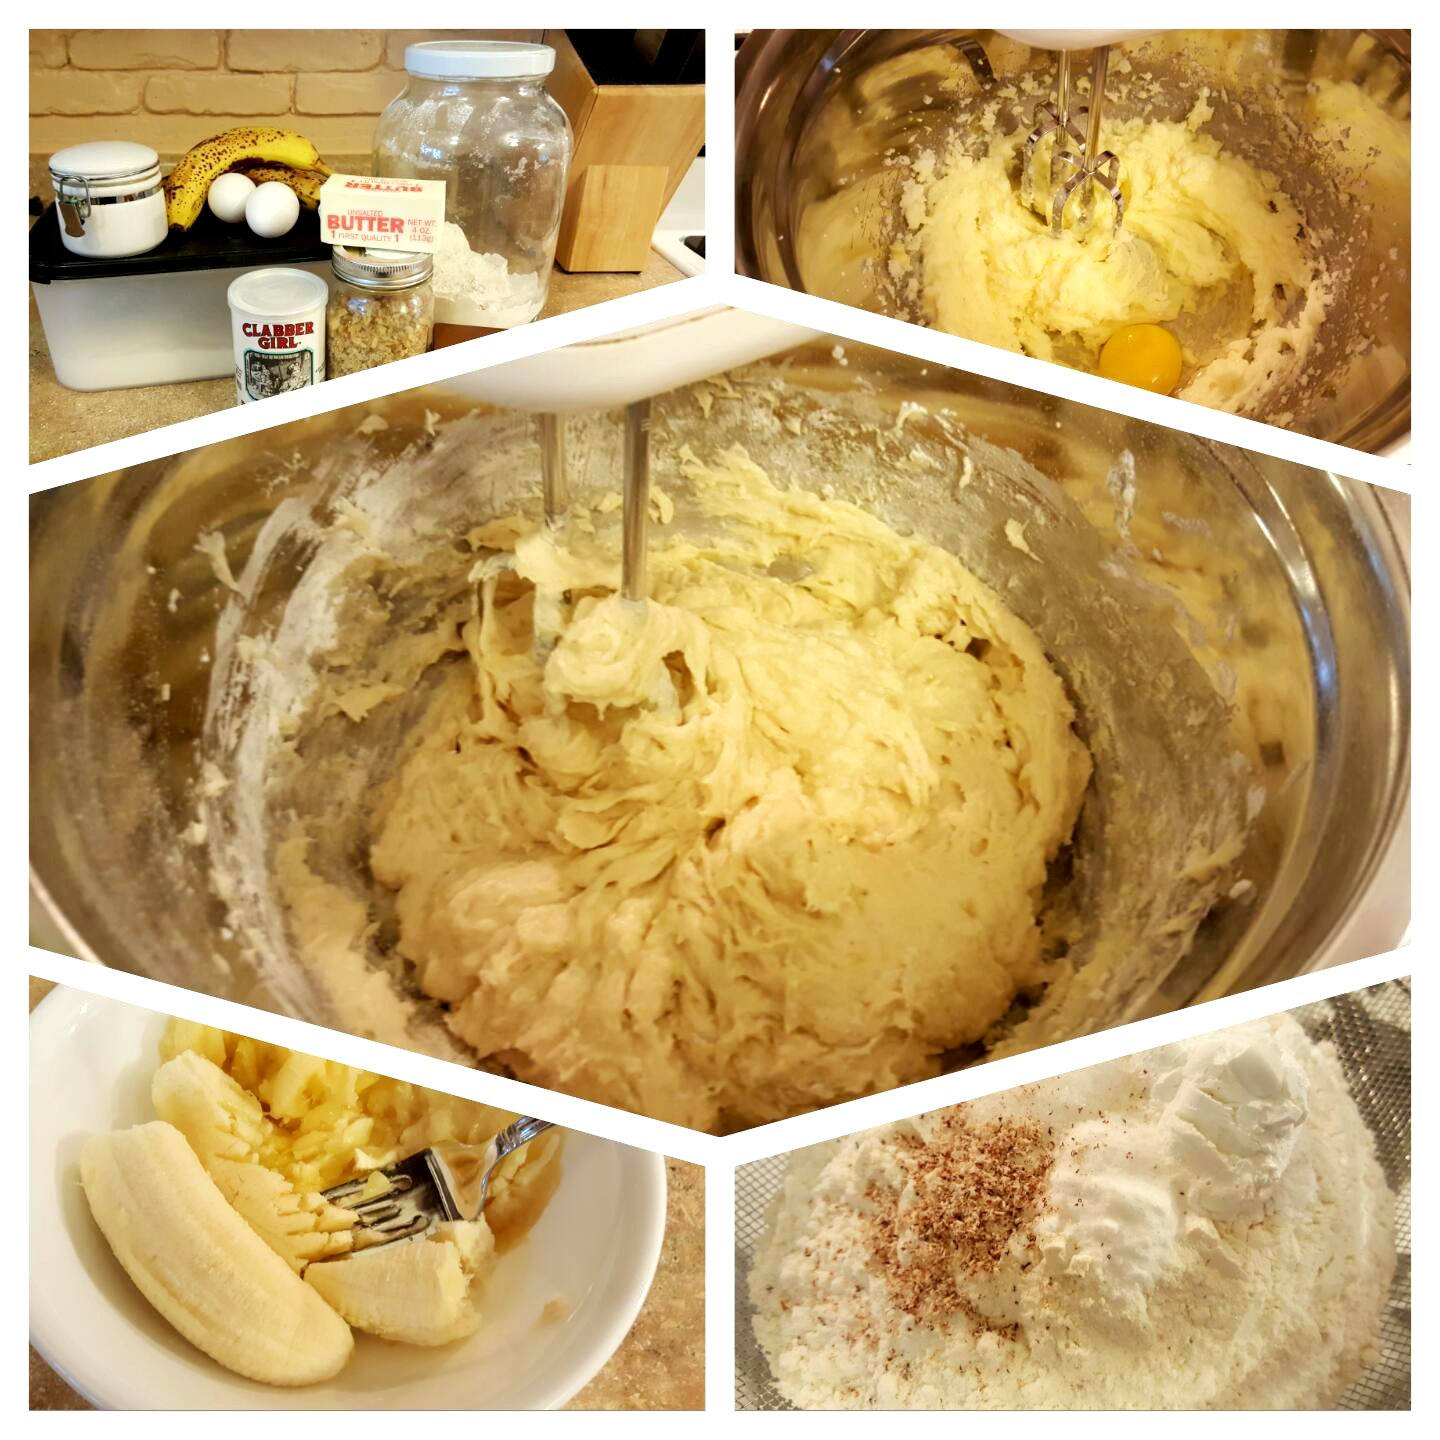 Banana Bread step by step